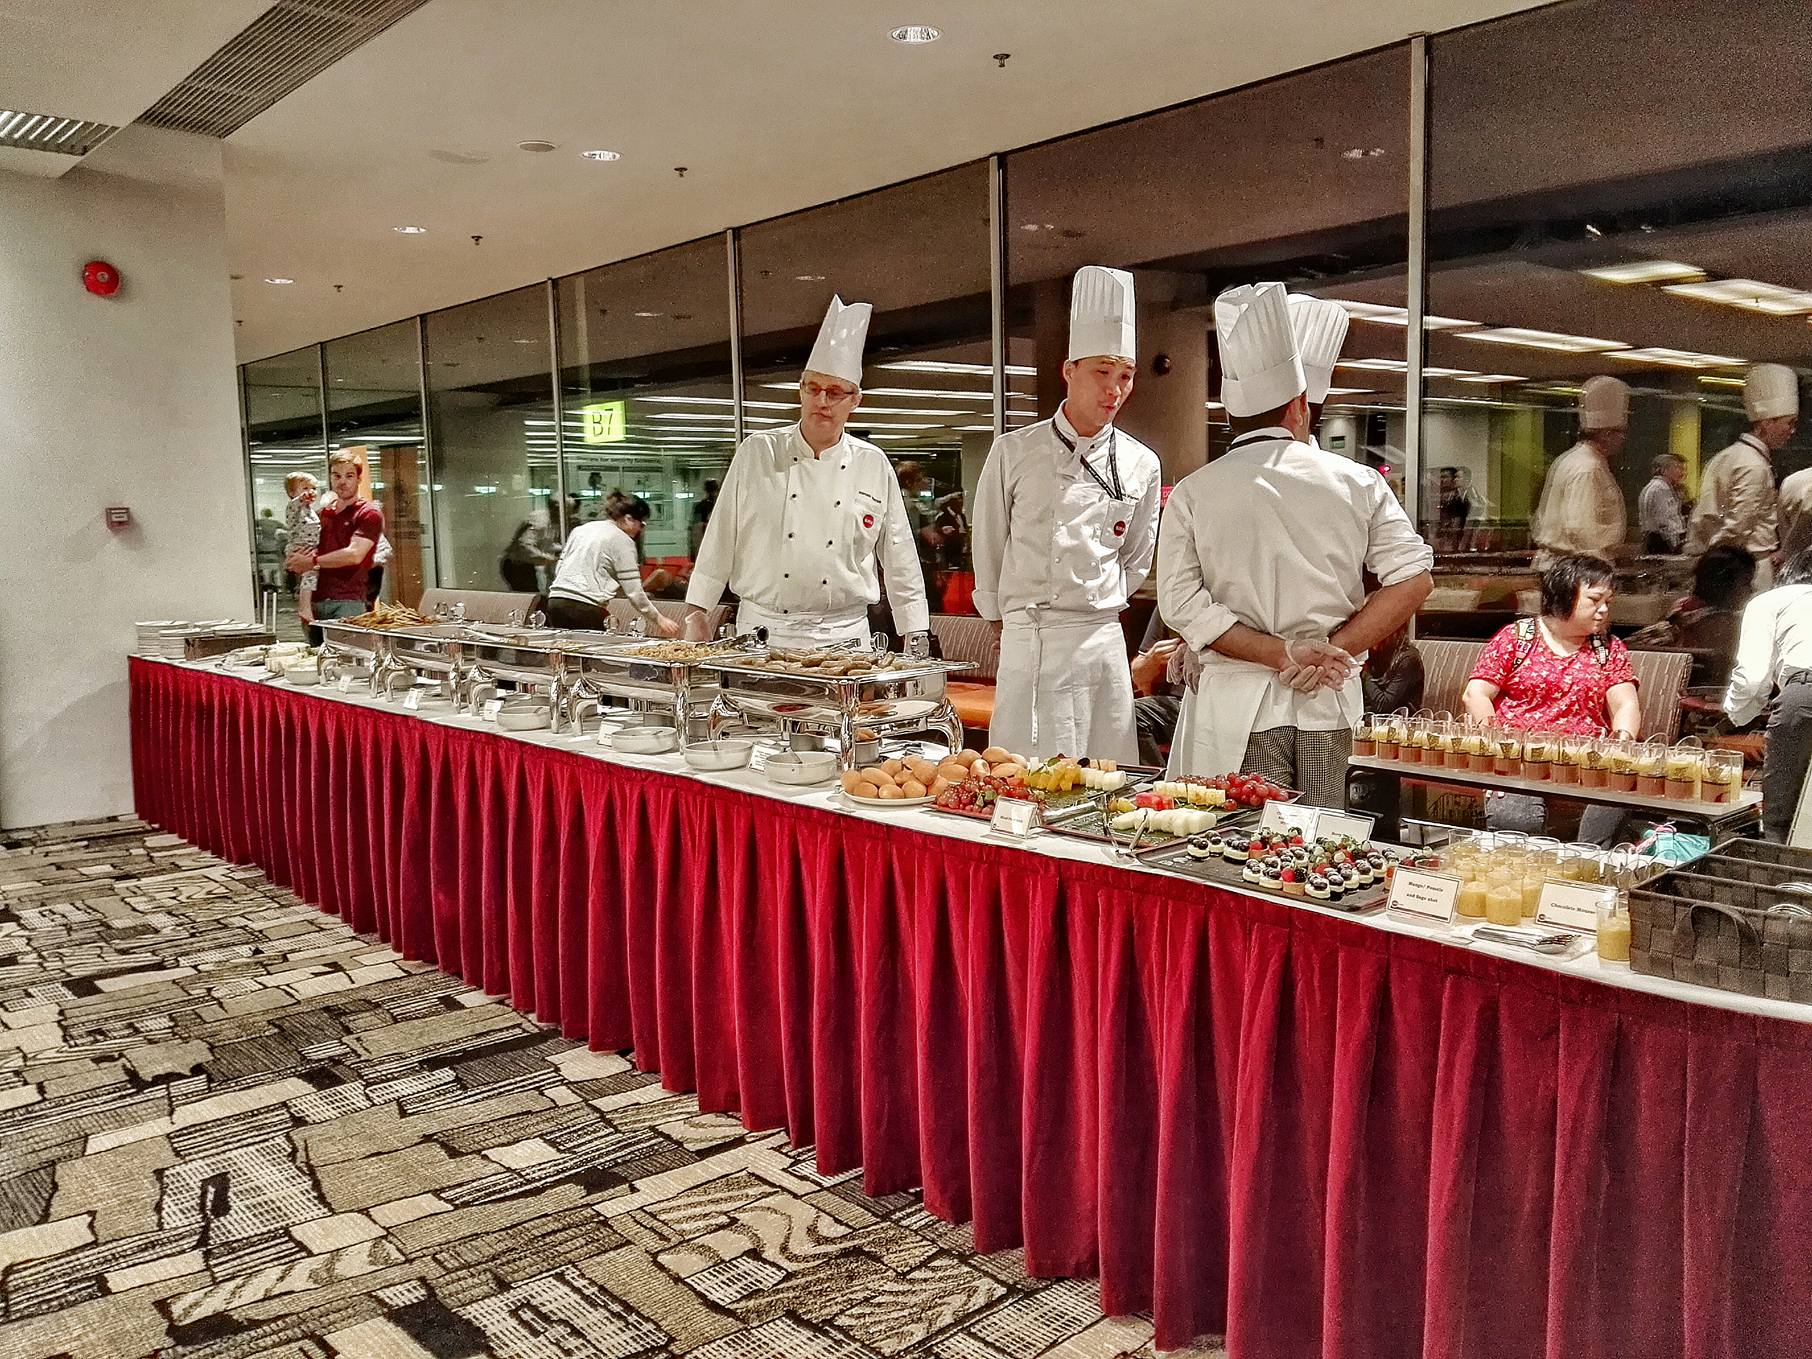 Buffet Station at Changi Airport Gate for the Inaugural Flight of Singapore Airlines